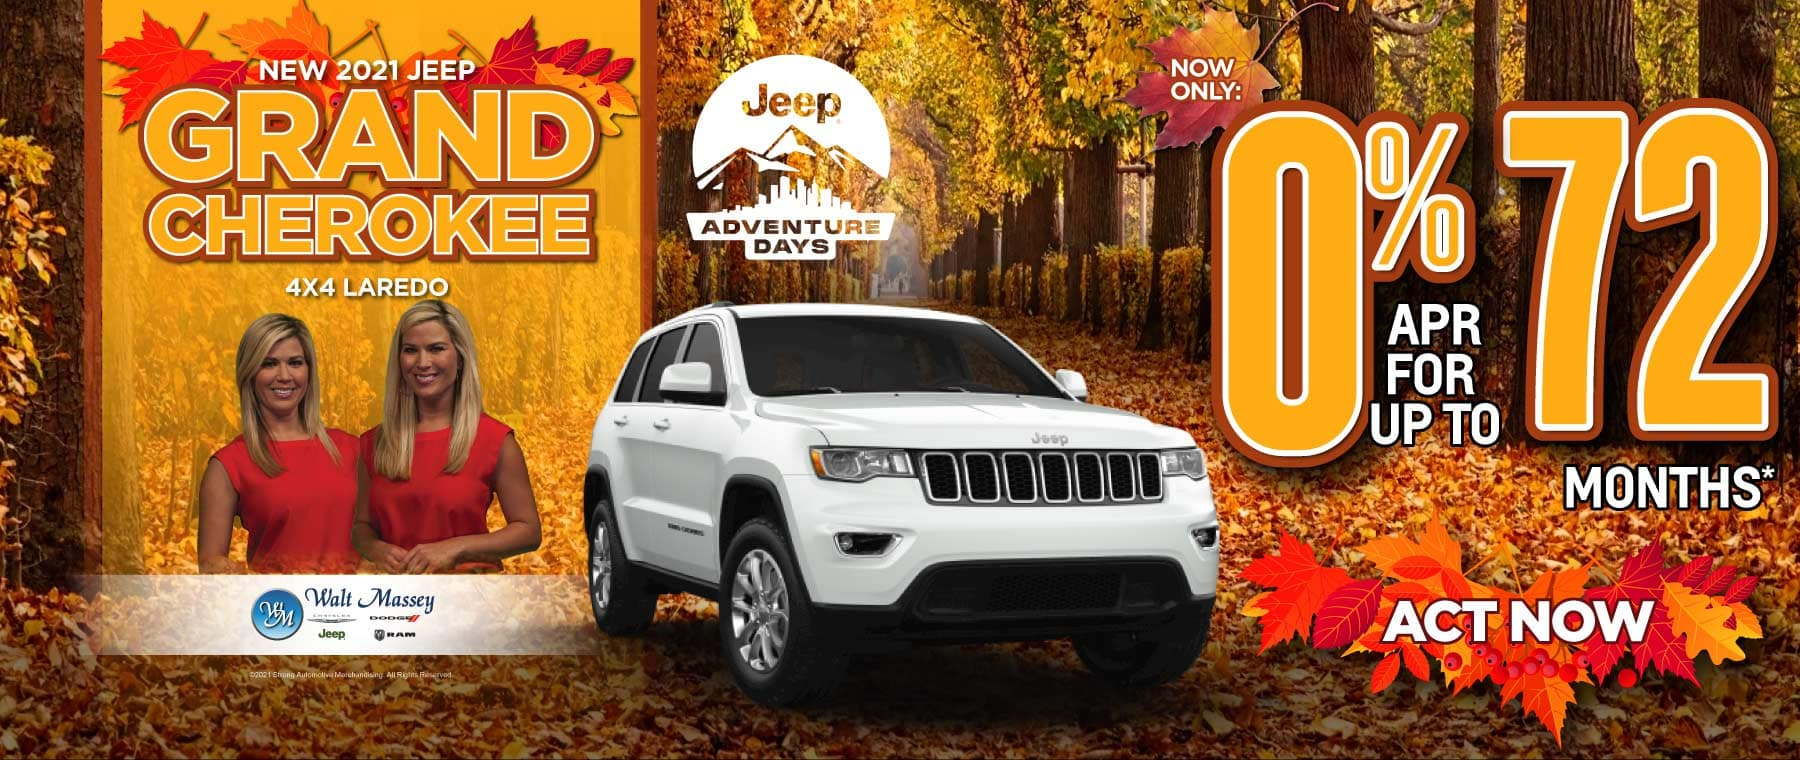 New 2021 Jeep Grand Cherokee now only 0% apr for up to 72 months | Act Now